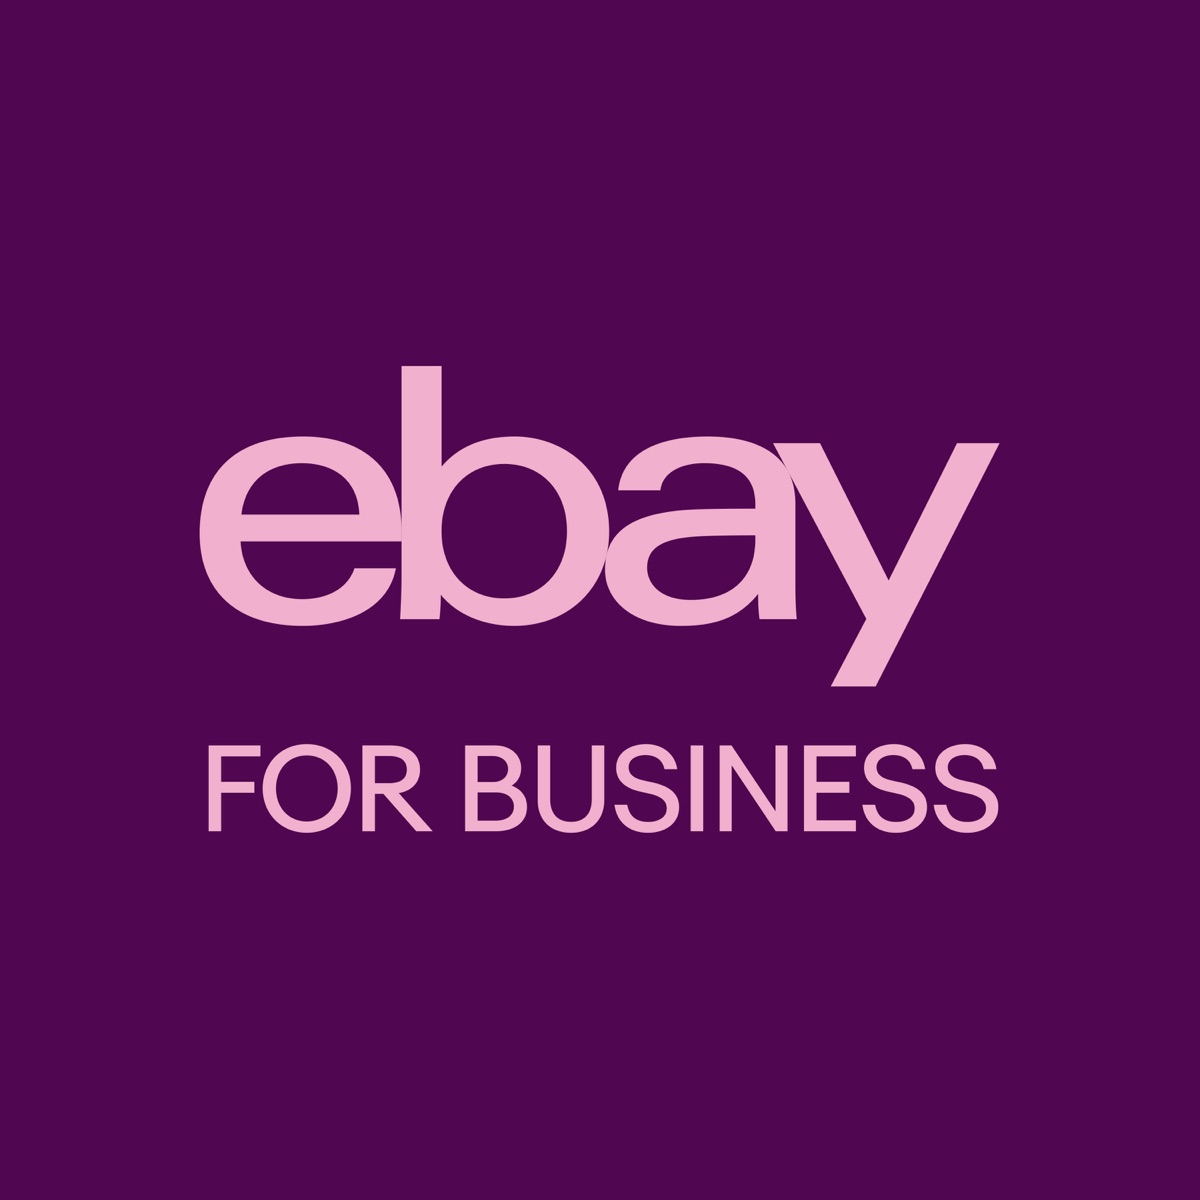 Ebay For Business Podcast Podtail